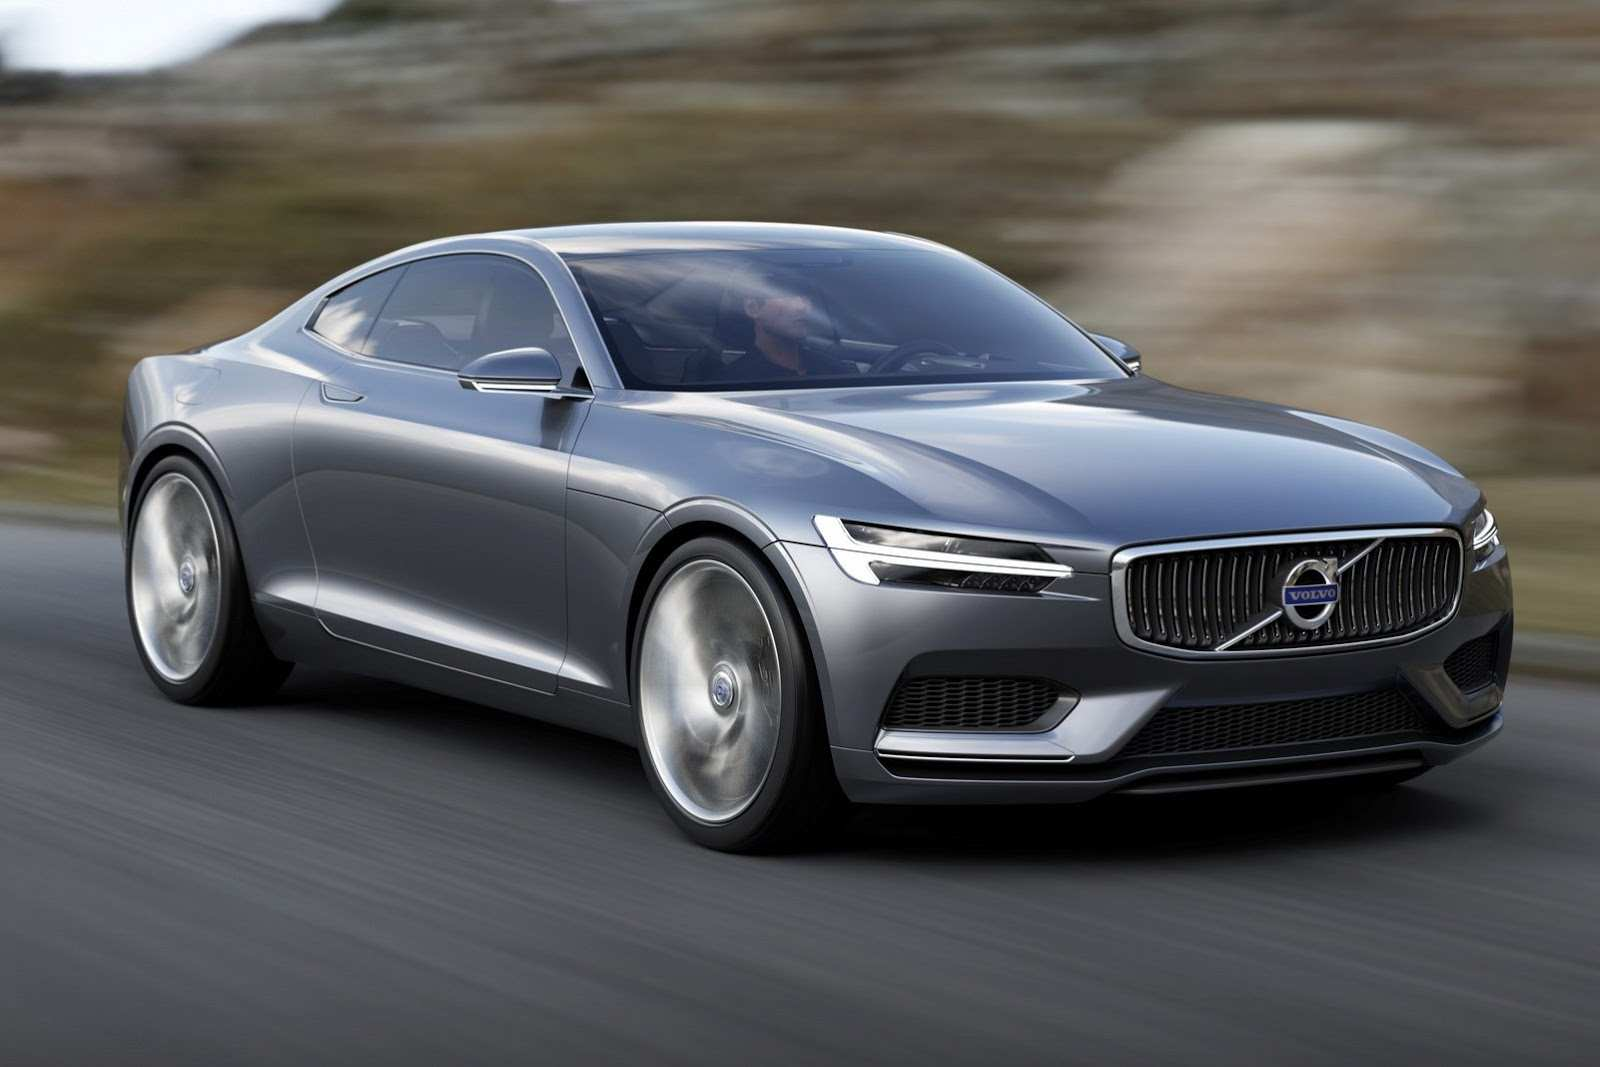 62 Gallery of Volvo Coupe 2019 Redesign and Concept for Volvo Coupe 2019